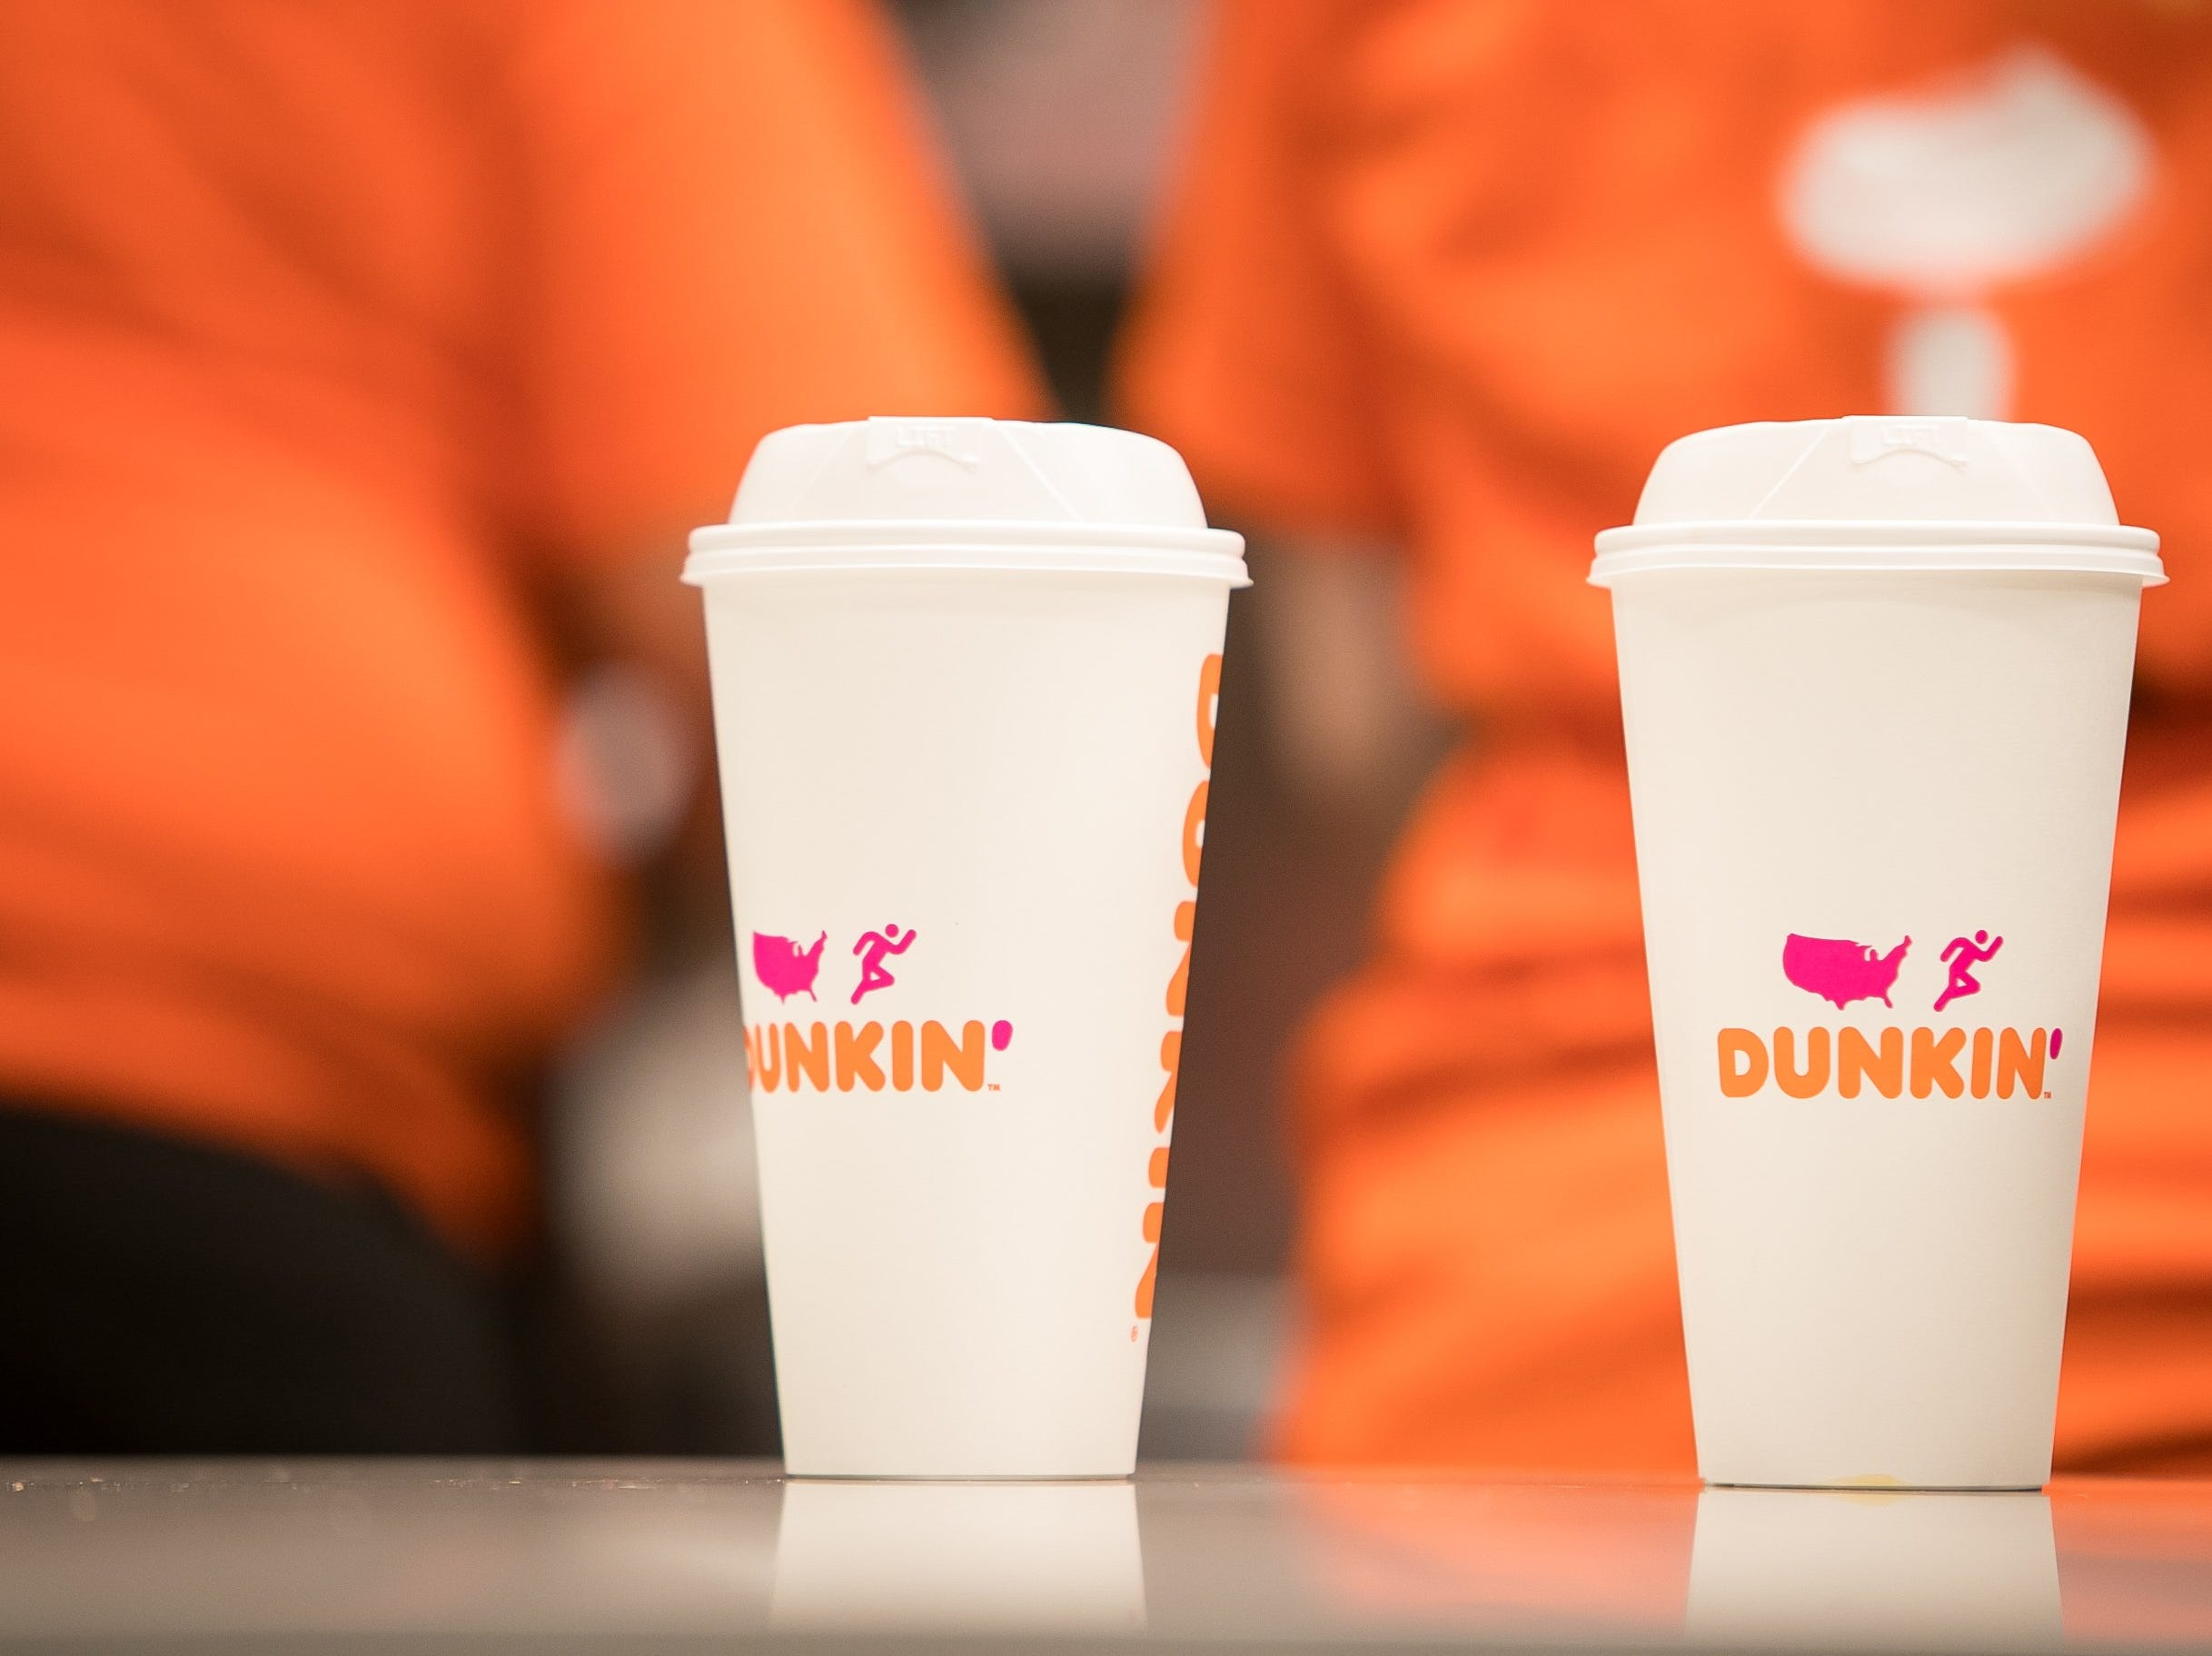 The new Dunkin' chain is now more energy efficient to include a new cup design.